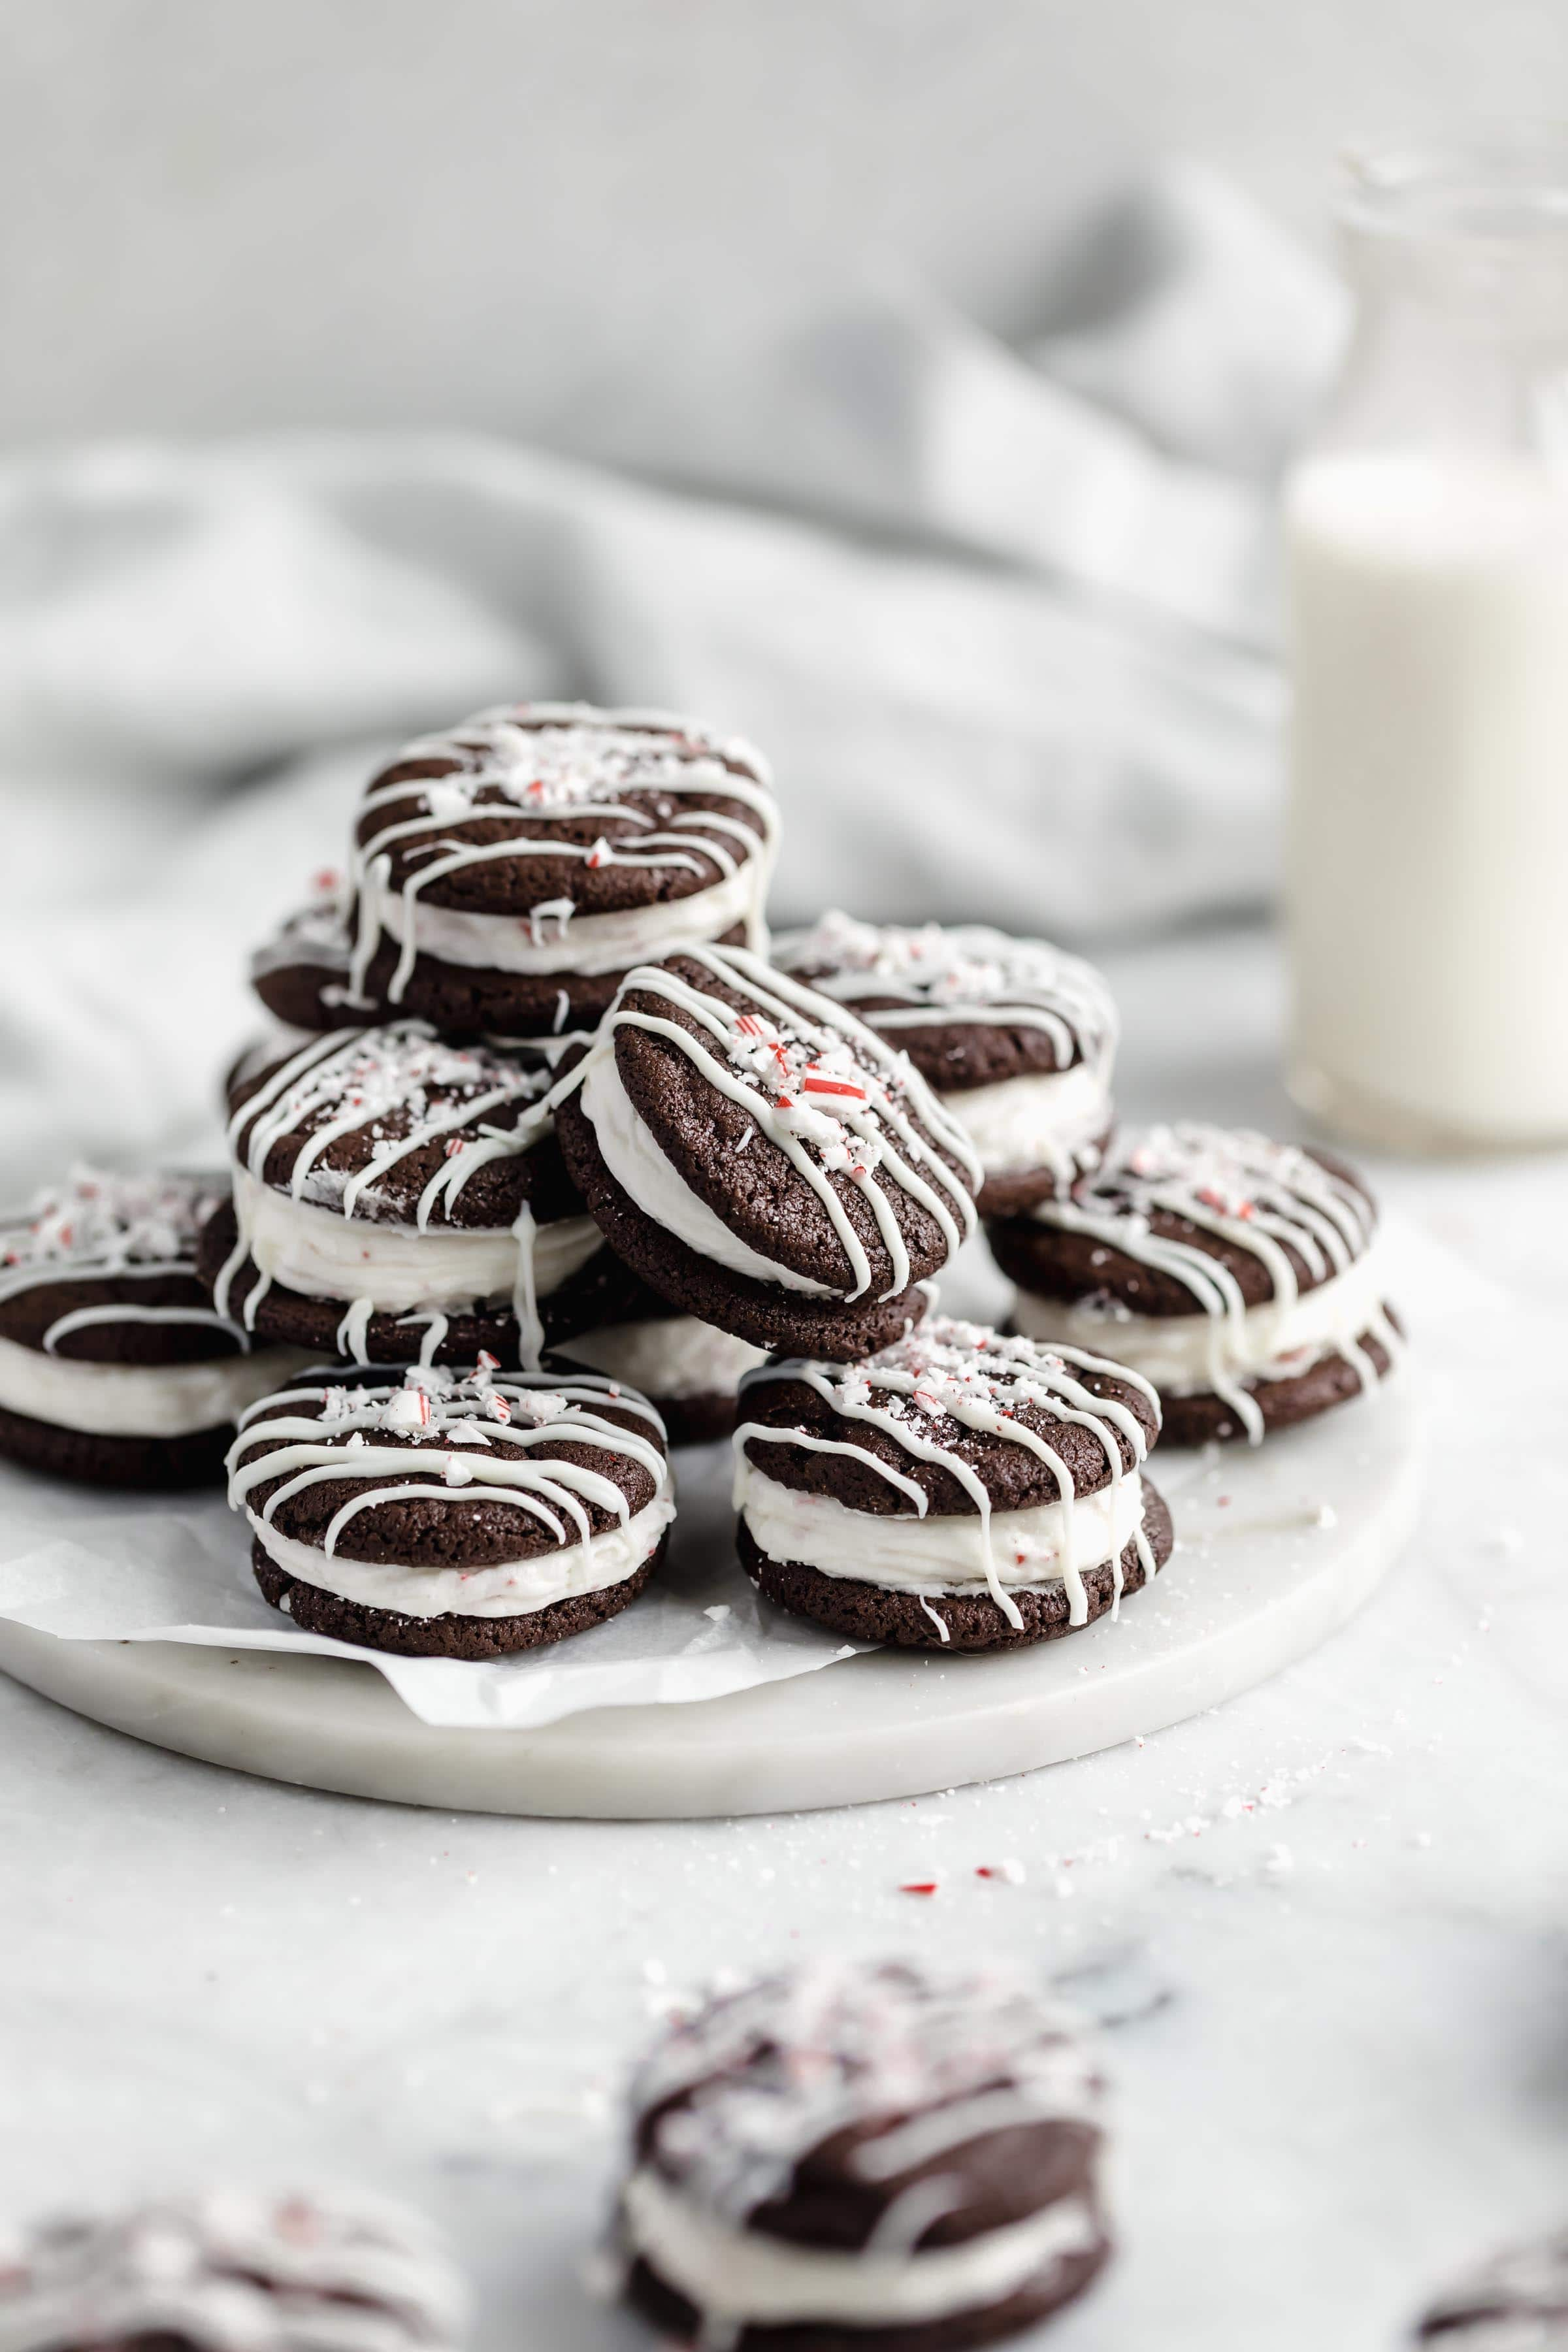 Happy Christmas Cookie season, babes! Whip up these delicious chocolate peppermint sandwich cookies for your next cookie exchange!